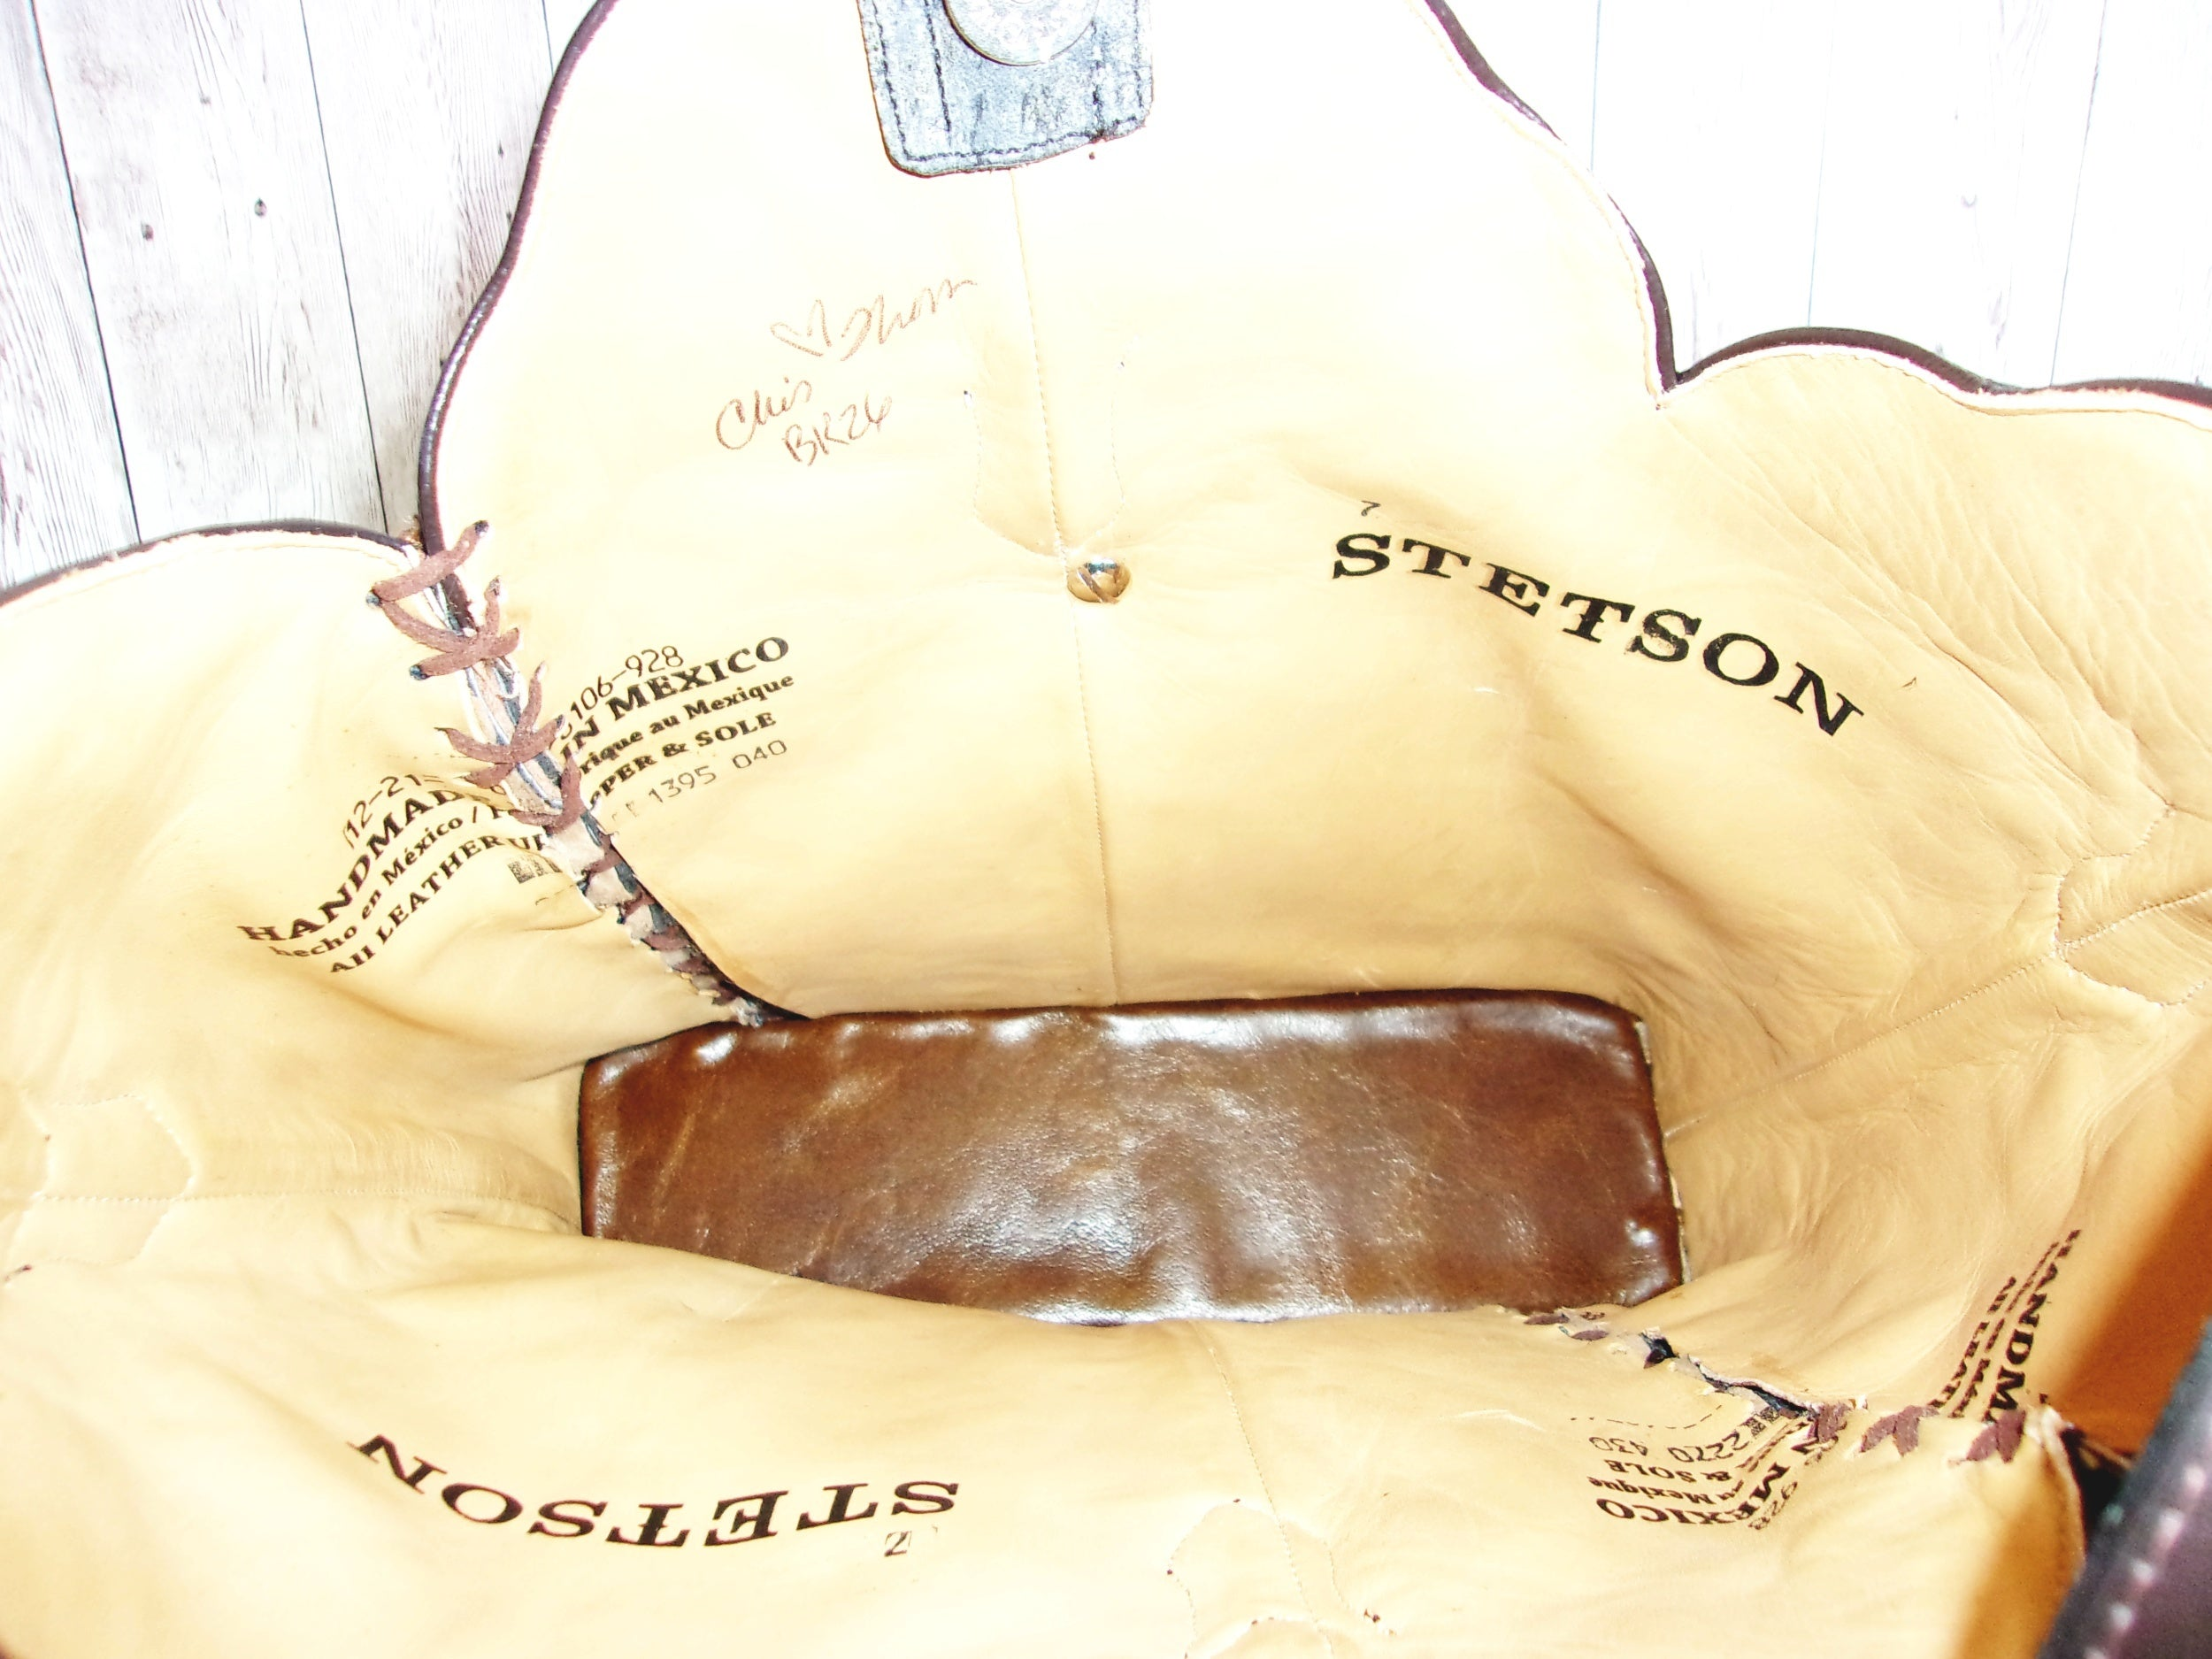 Cowboy Boot Purse Bucket Bag BK26 - Cowboy Boot Purses by Chris Thompson for Distinctive Western Fashion